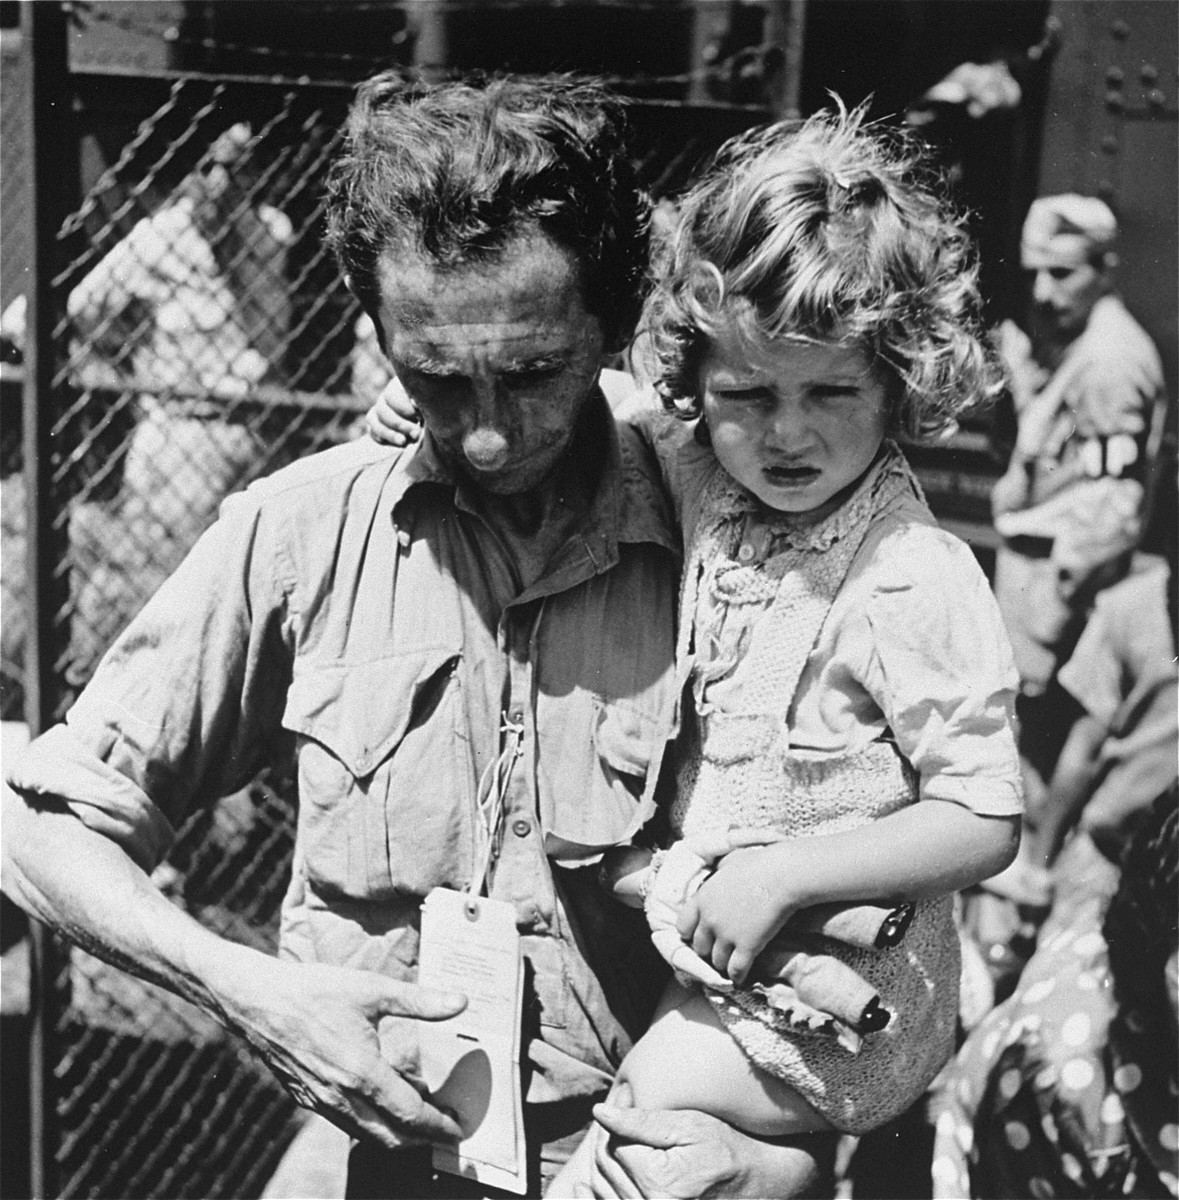 A father, holding his daughter, checks his tags during check in at the Fort Ontario refugee shelter.